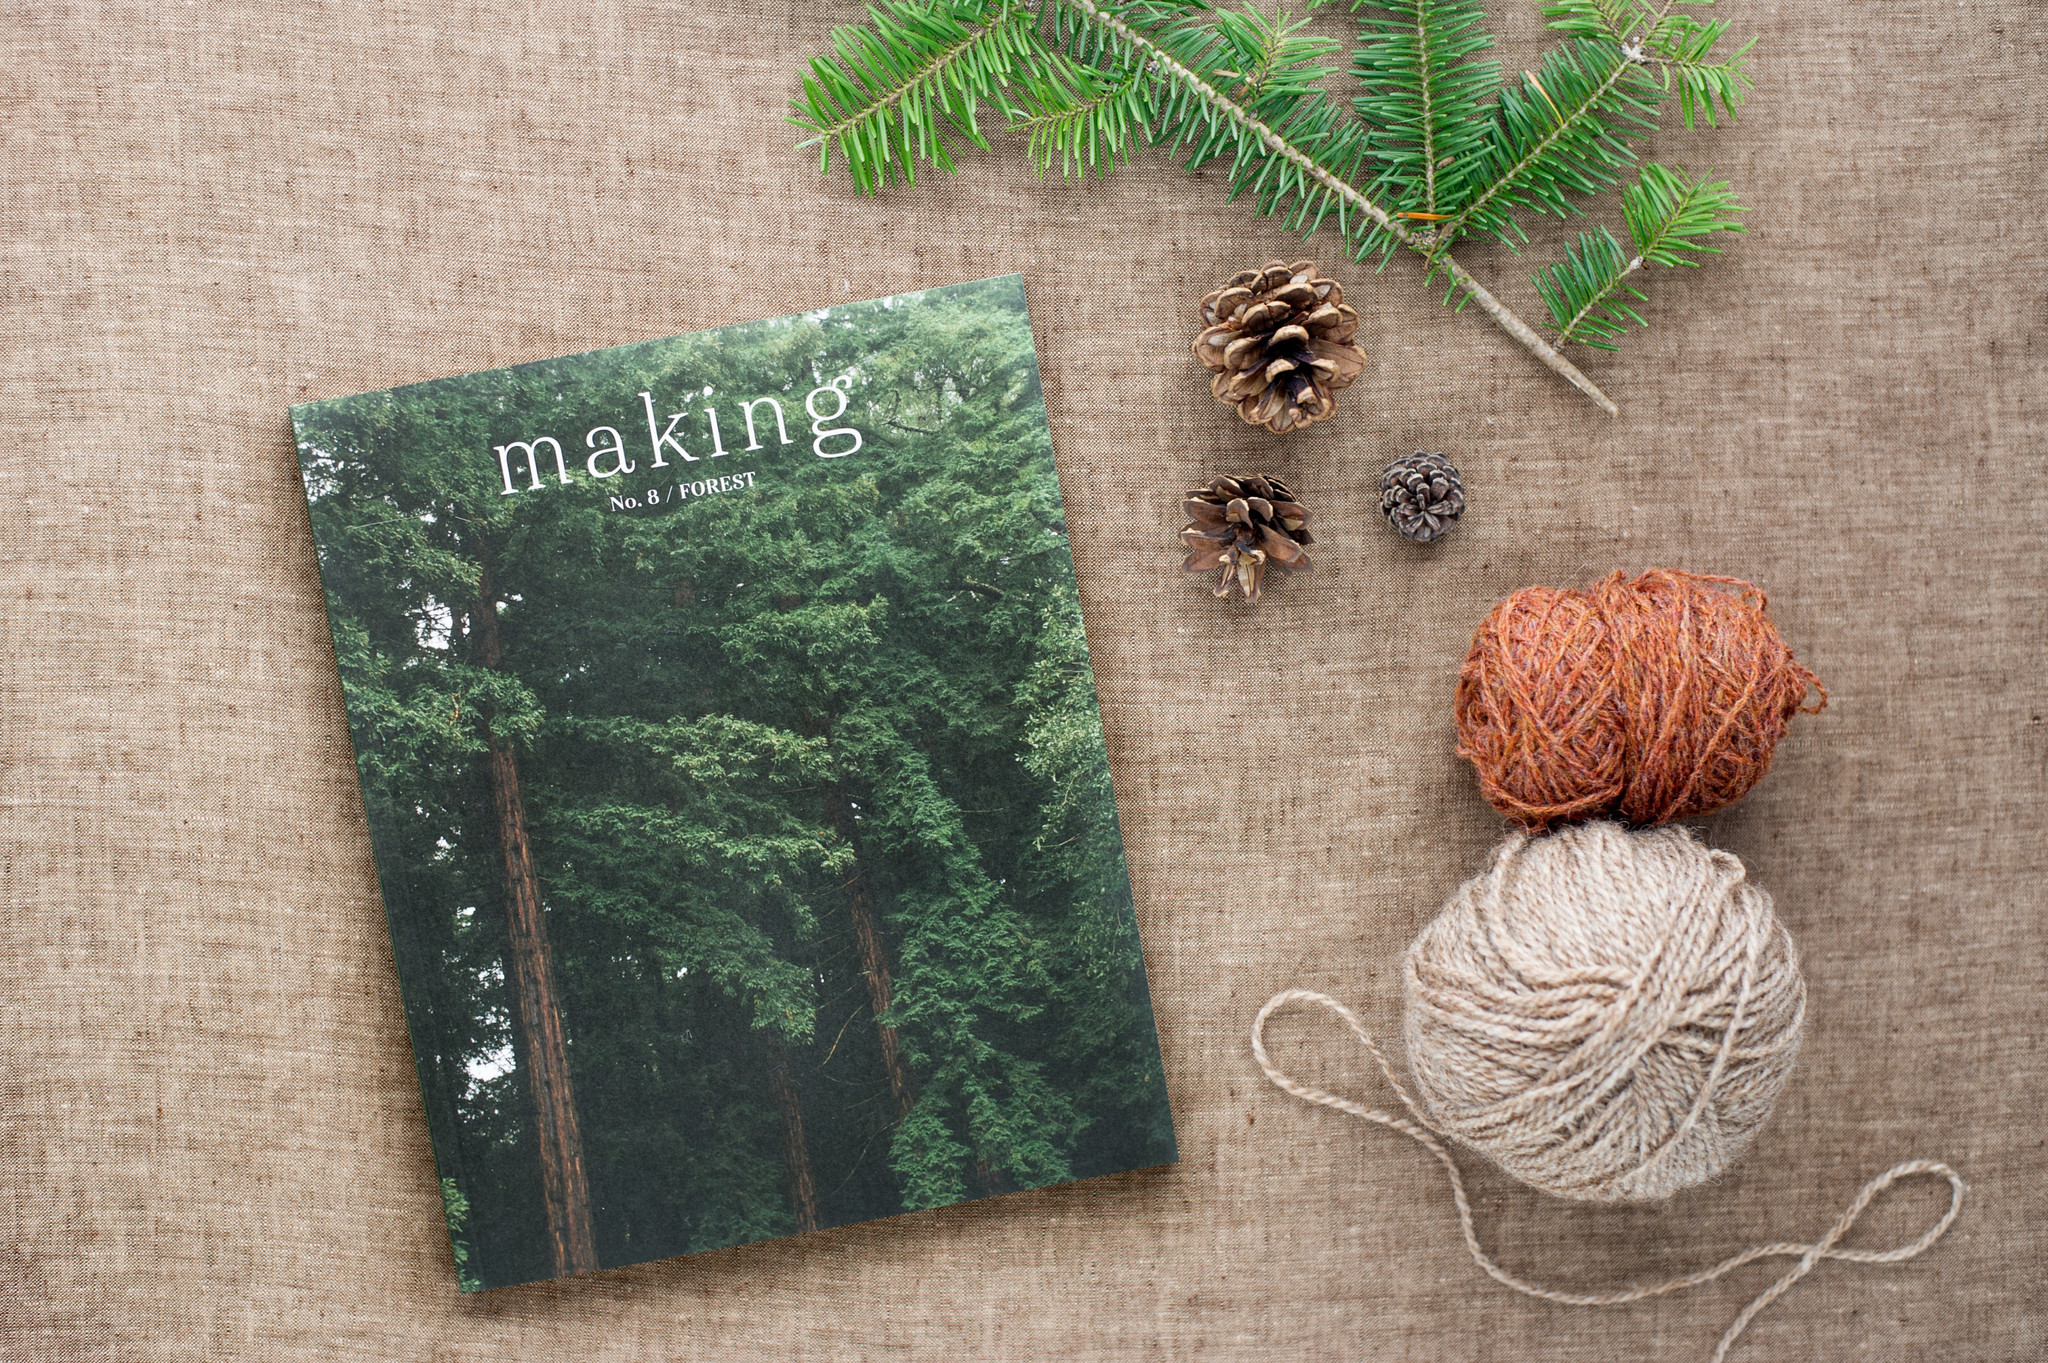 Making Magazine : No. 8 Forest